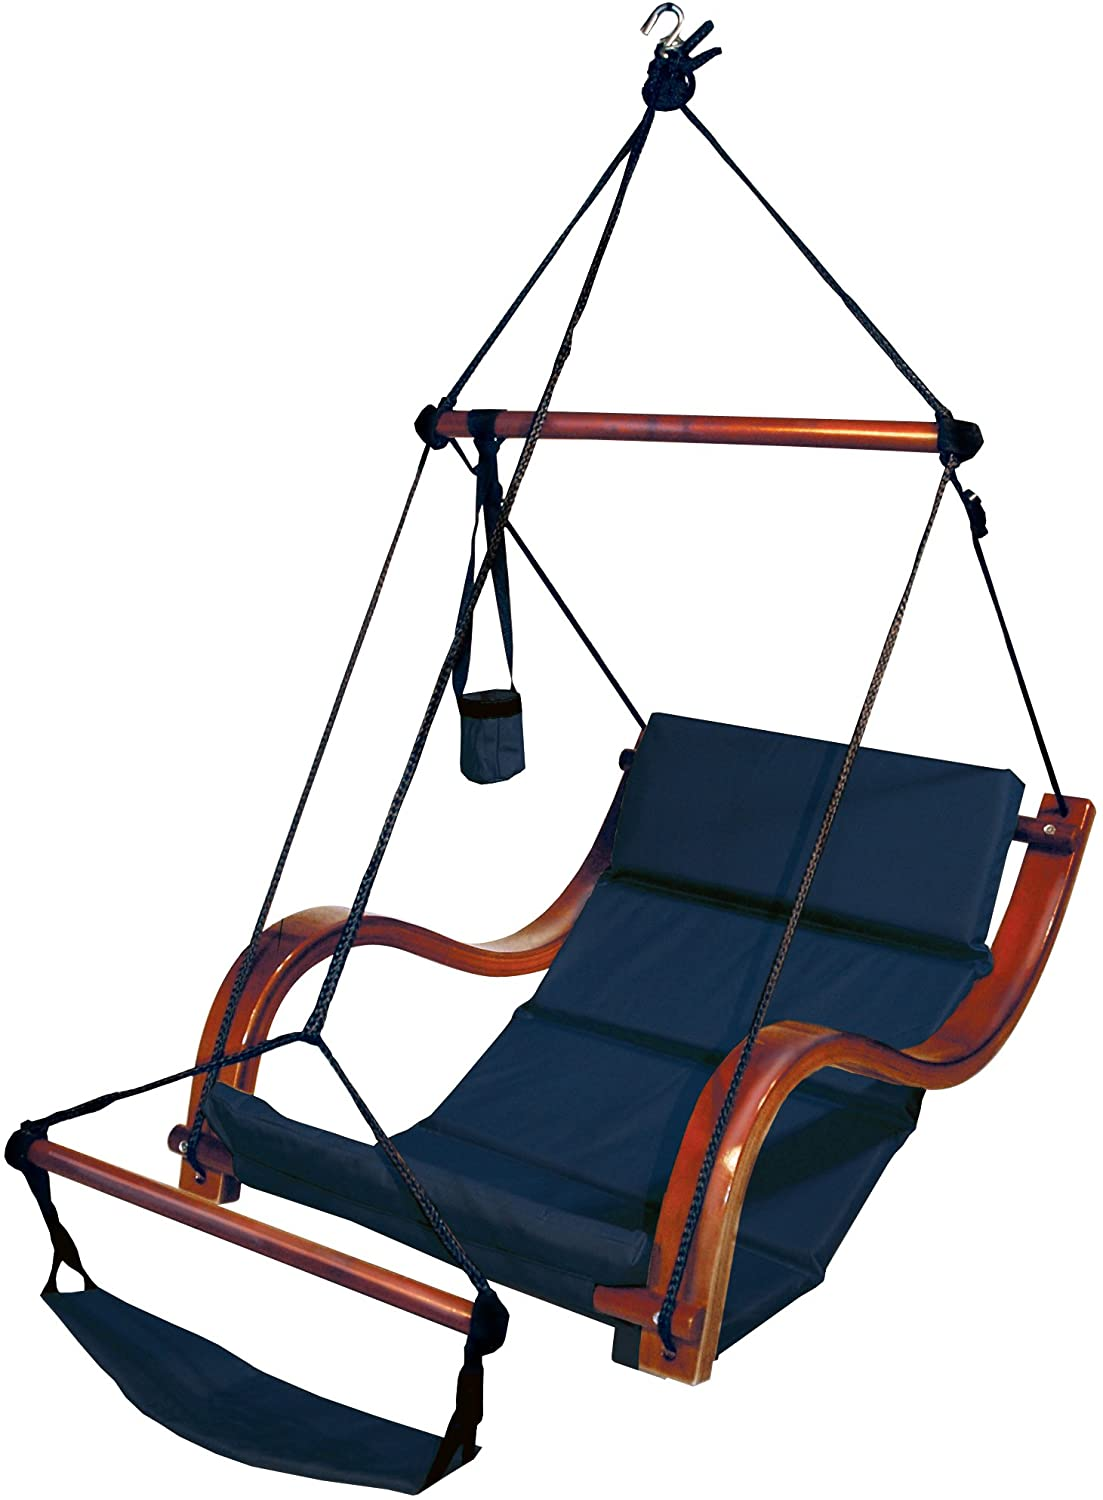 Top 10 hanging chairs for houses and gardens 2020 9